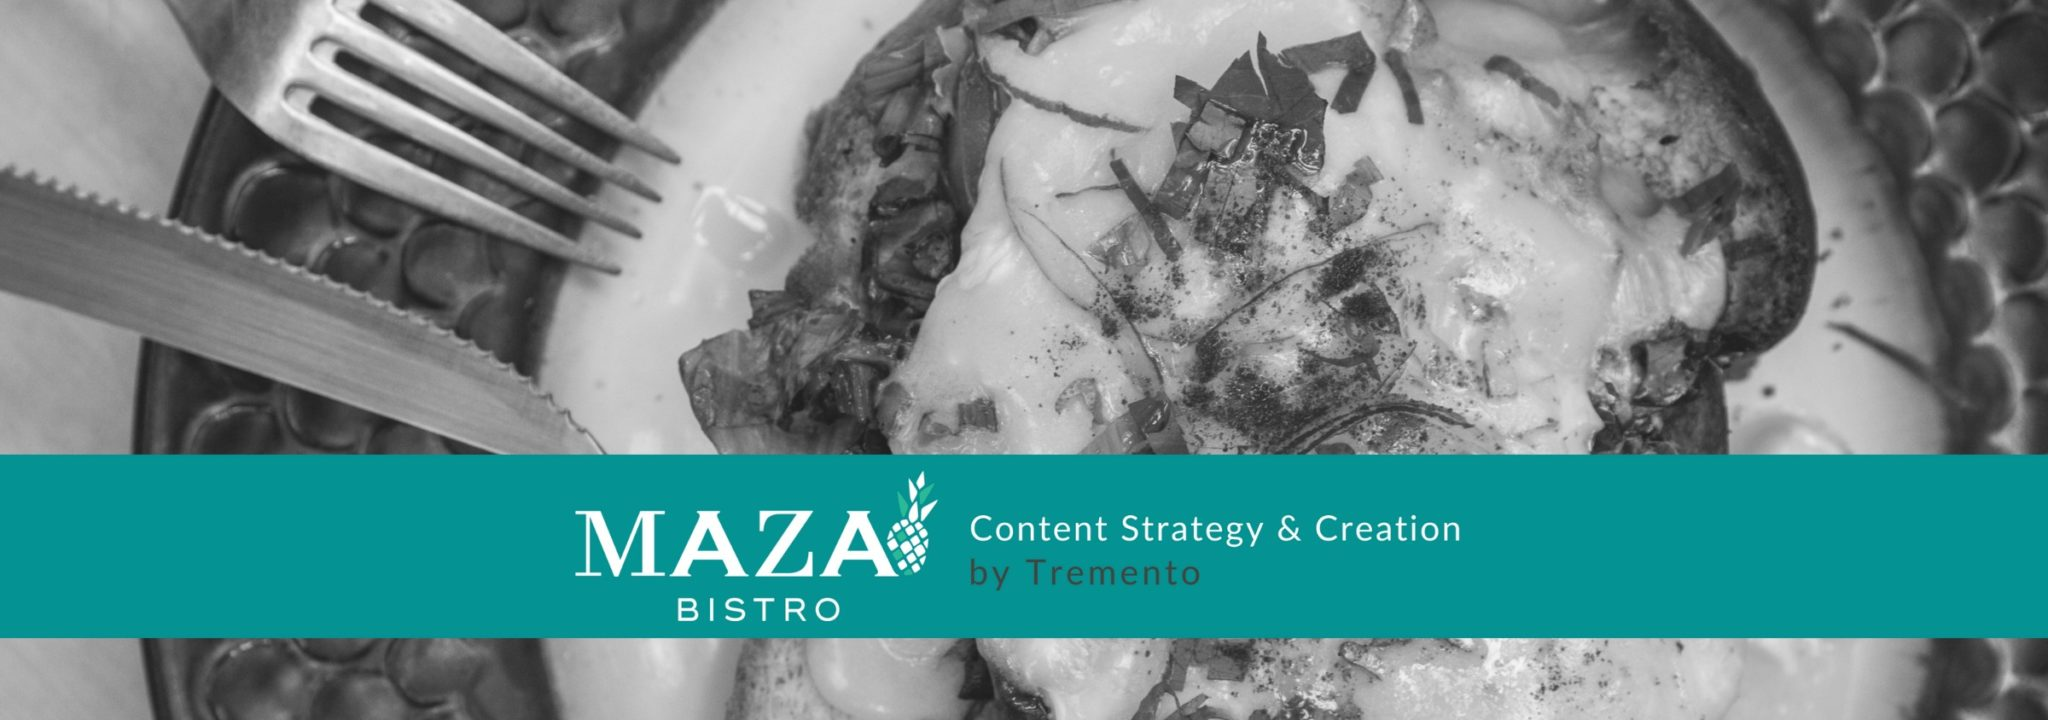 Maza Bistro - Content Strategy & Creation - Hospitality Advertising Agency Tremento